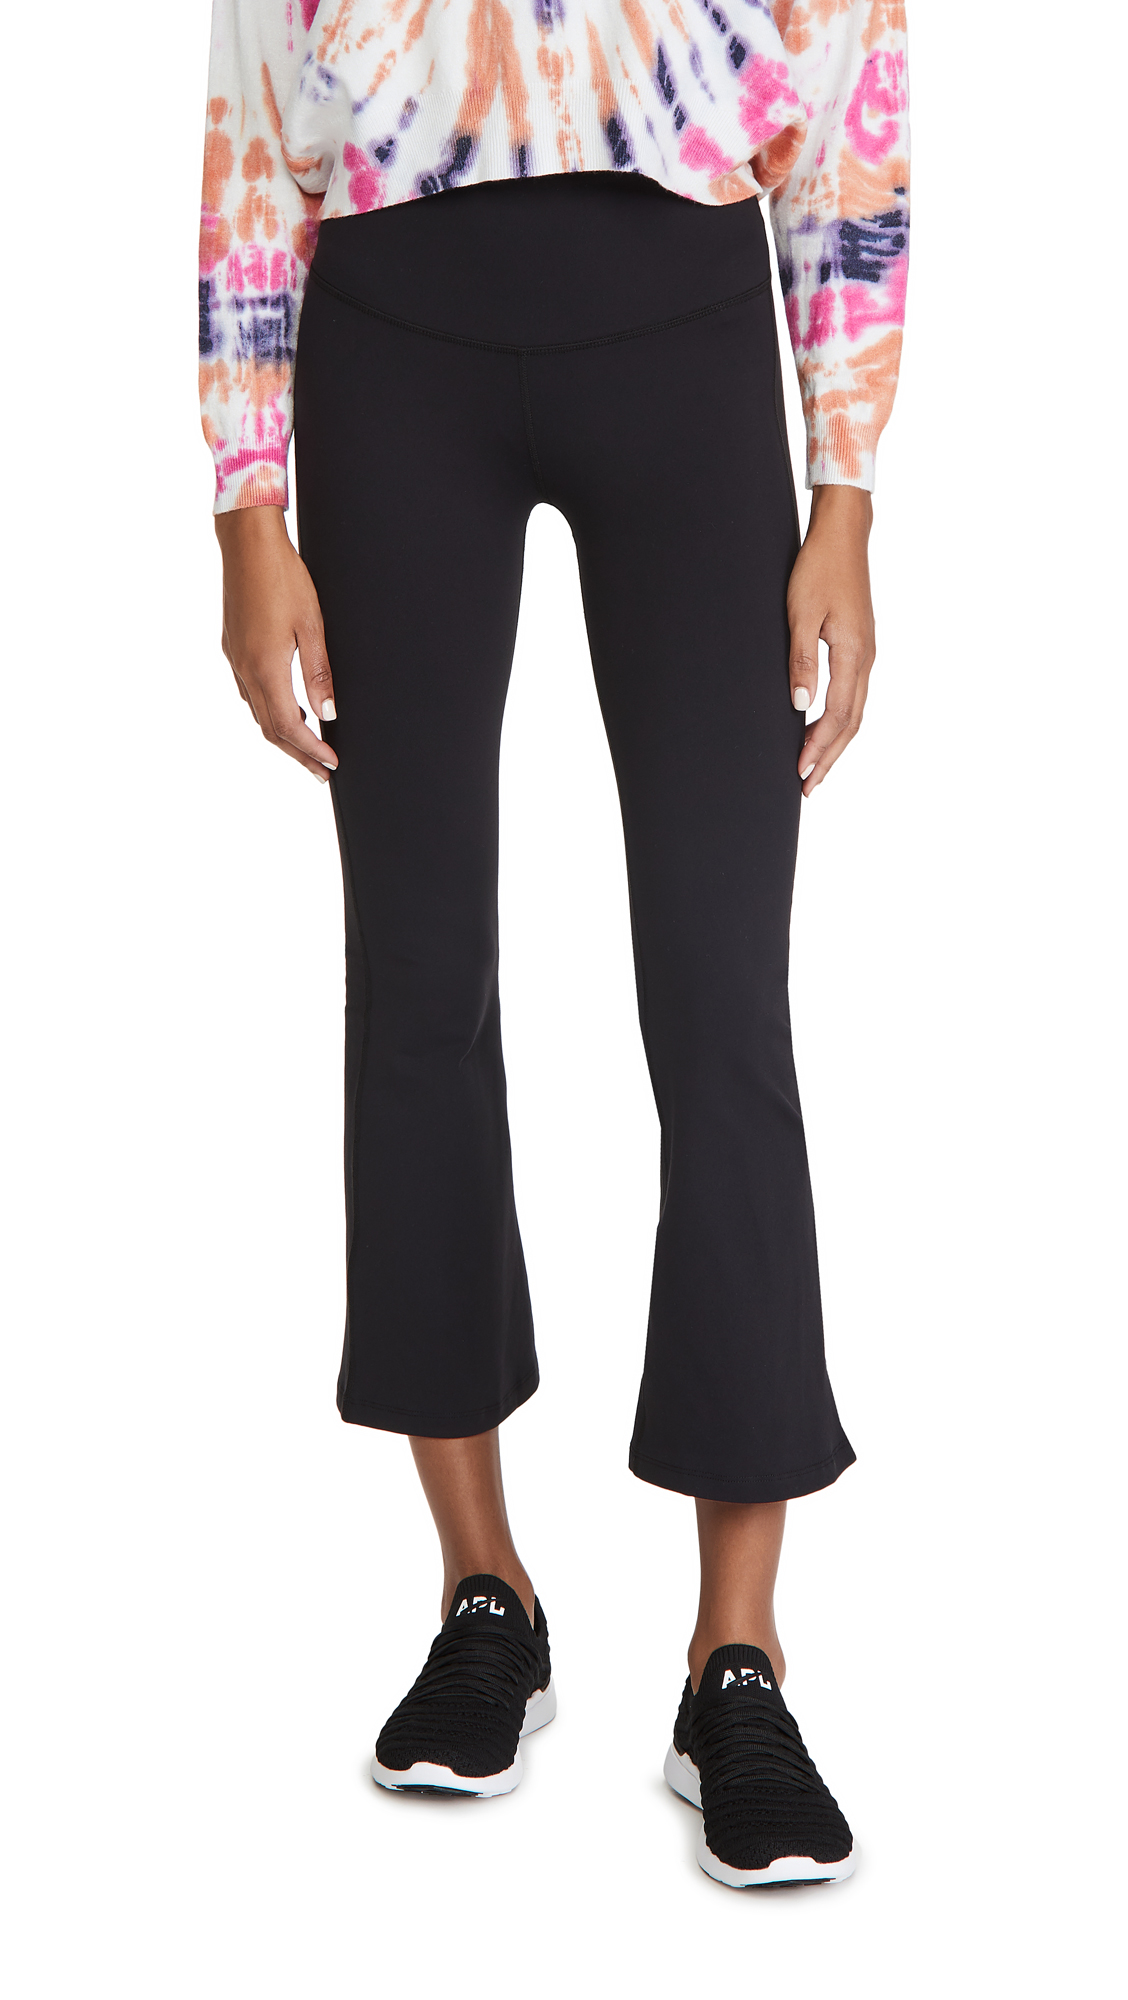 Splits59 Raquel Crop Leggings